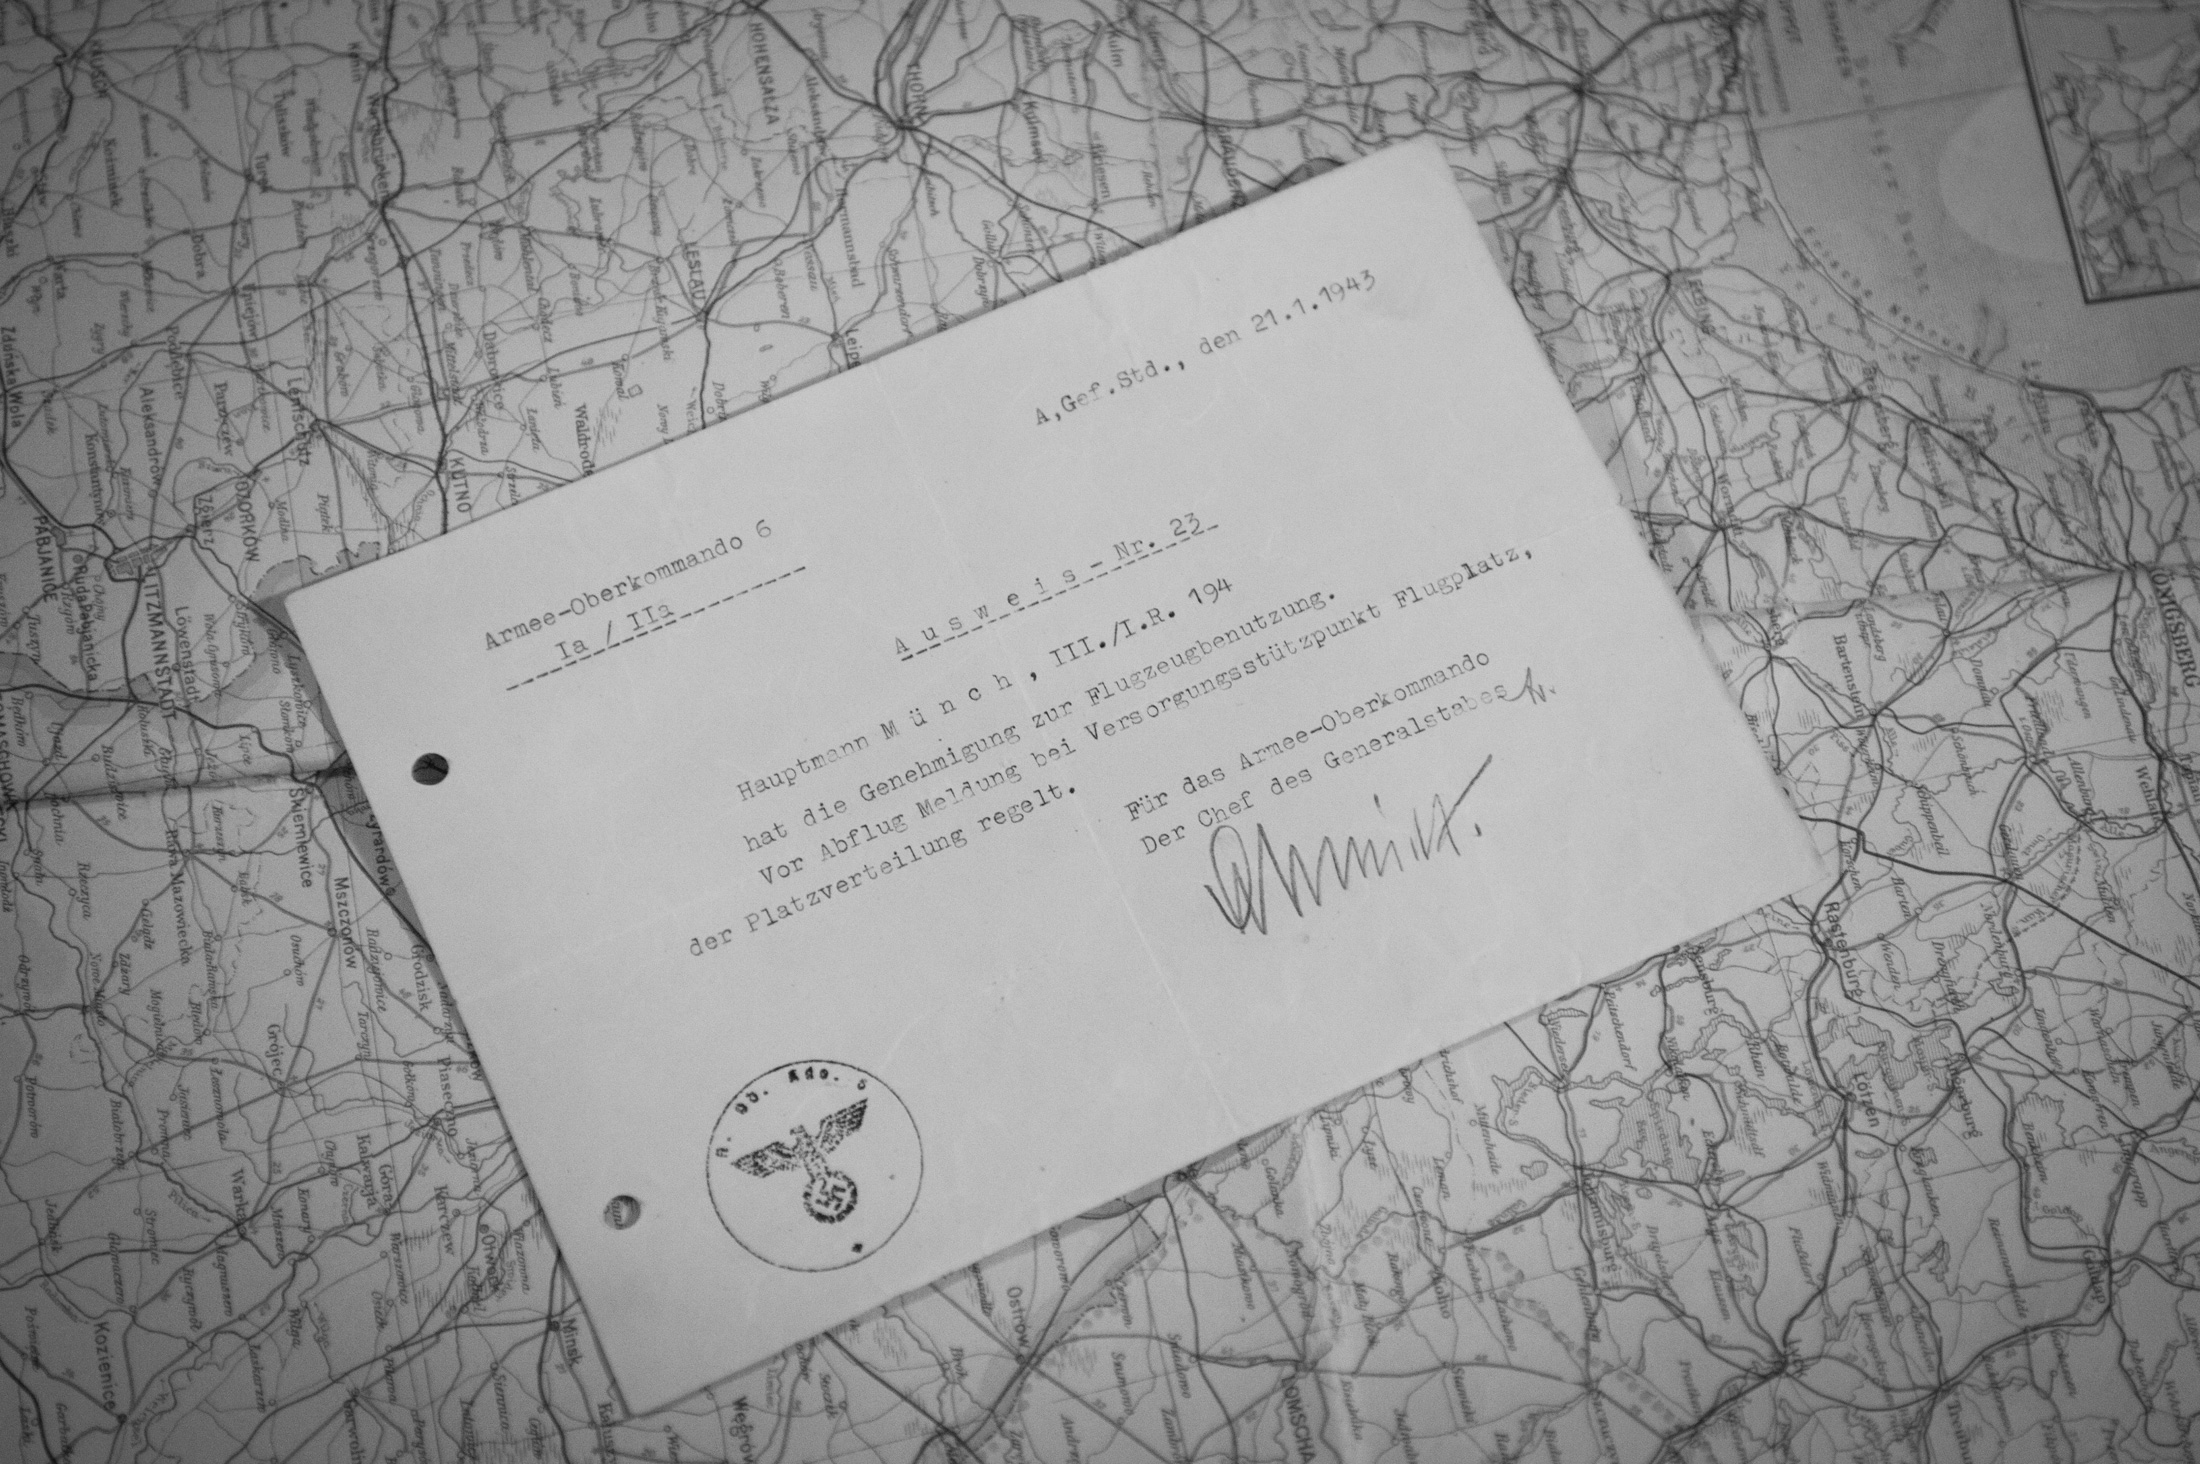 The certificate that authorized Münch to leave Stalingrad by plane. Dated January 21, 1943, it was signed by Sixth Army Chief of Staff Lieutenant General Arthur Schmidt .